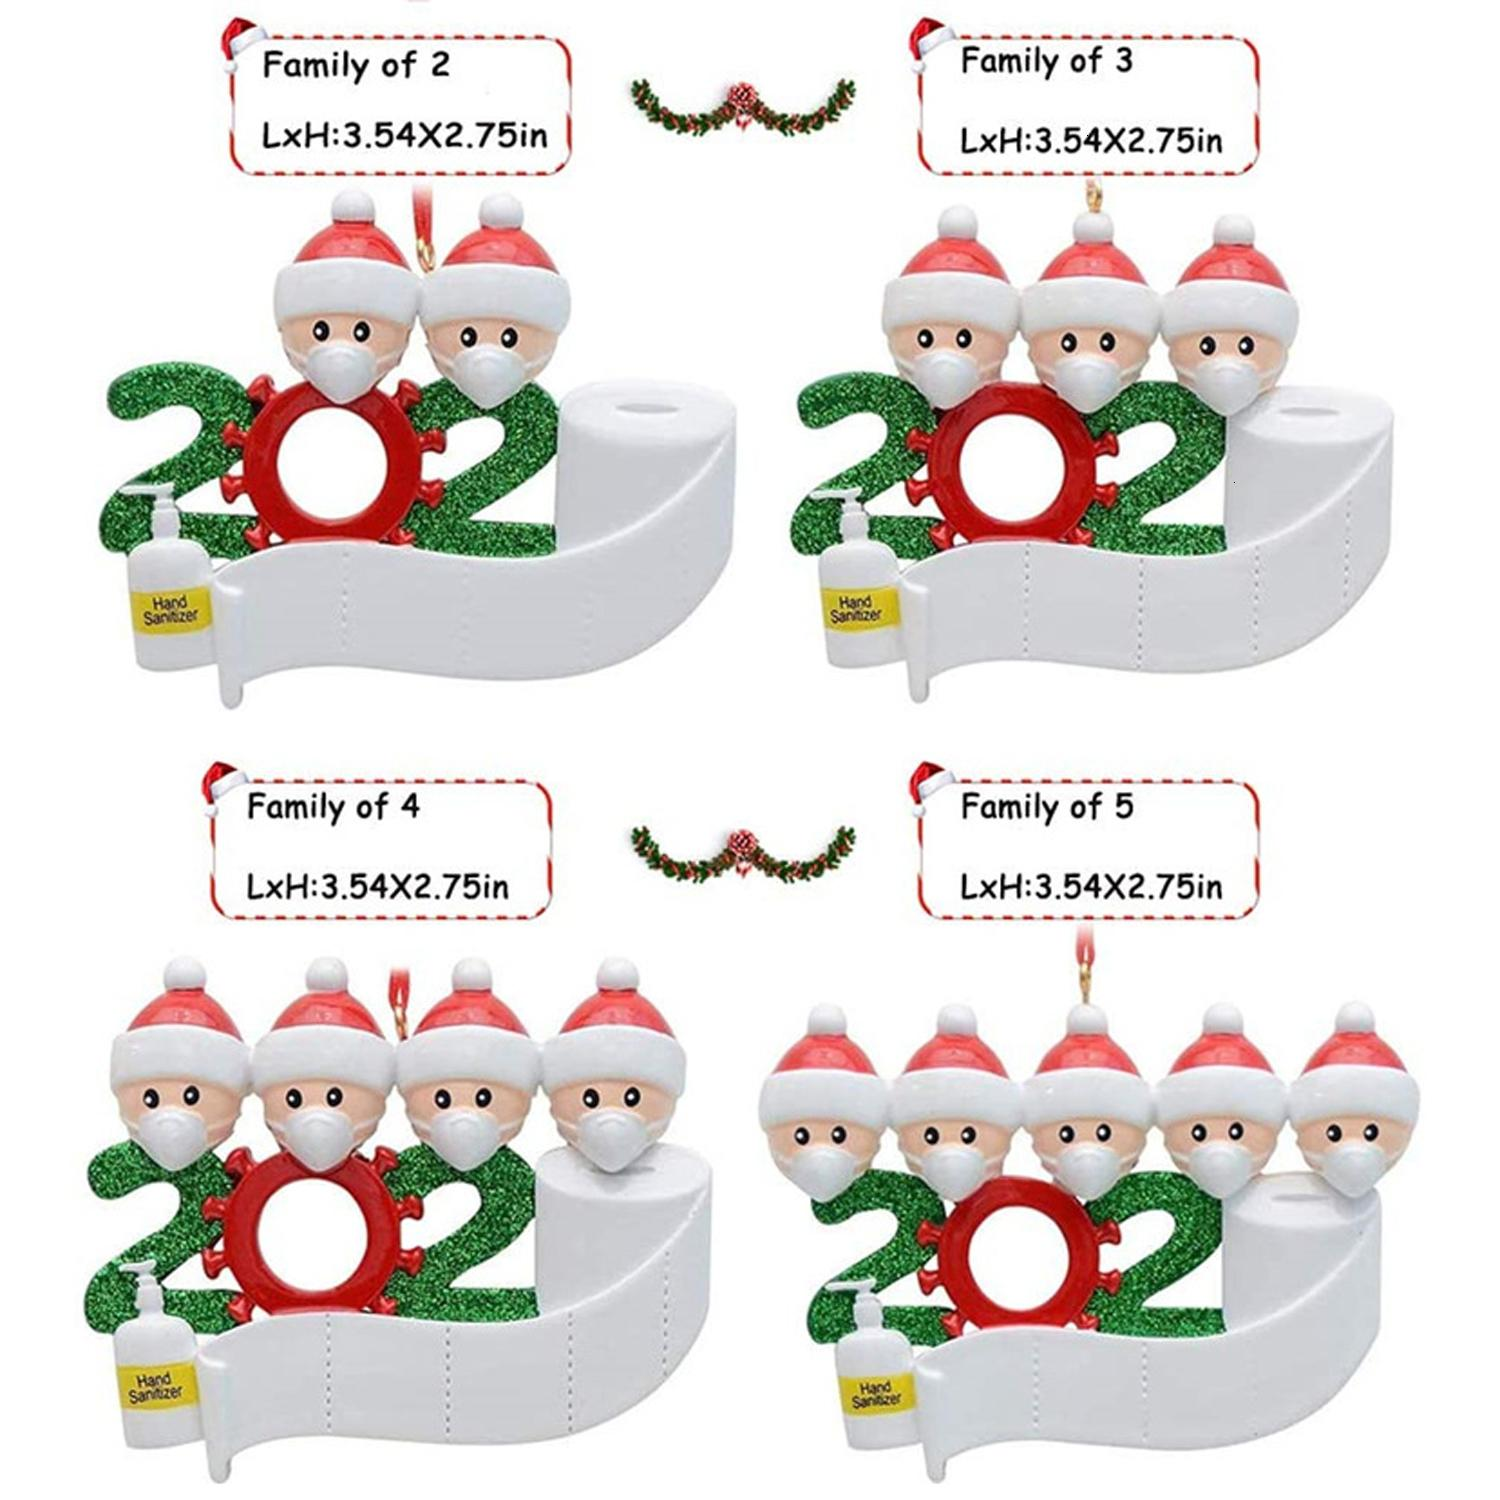 FactoryBPXXGift Christmas Family 2020 Survivor Ornament of Customized 2 3 4 5 6 7 Hang Decoration Snowman Pendant With Face Mask Ha